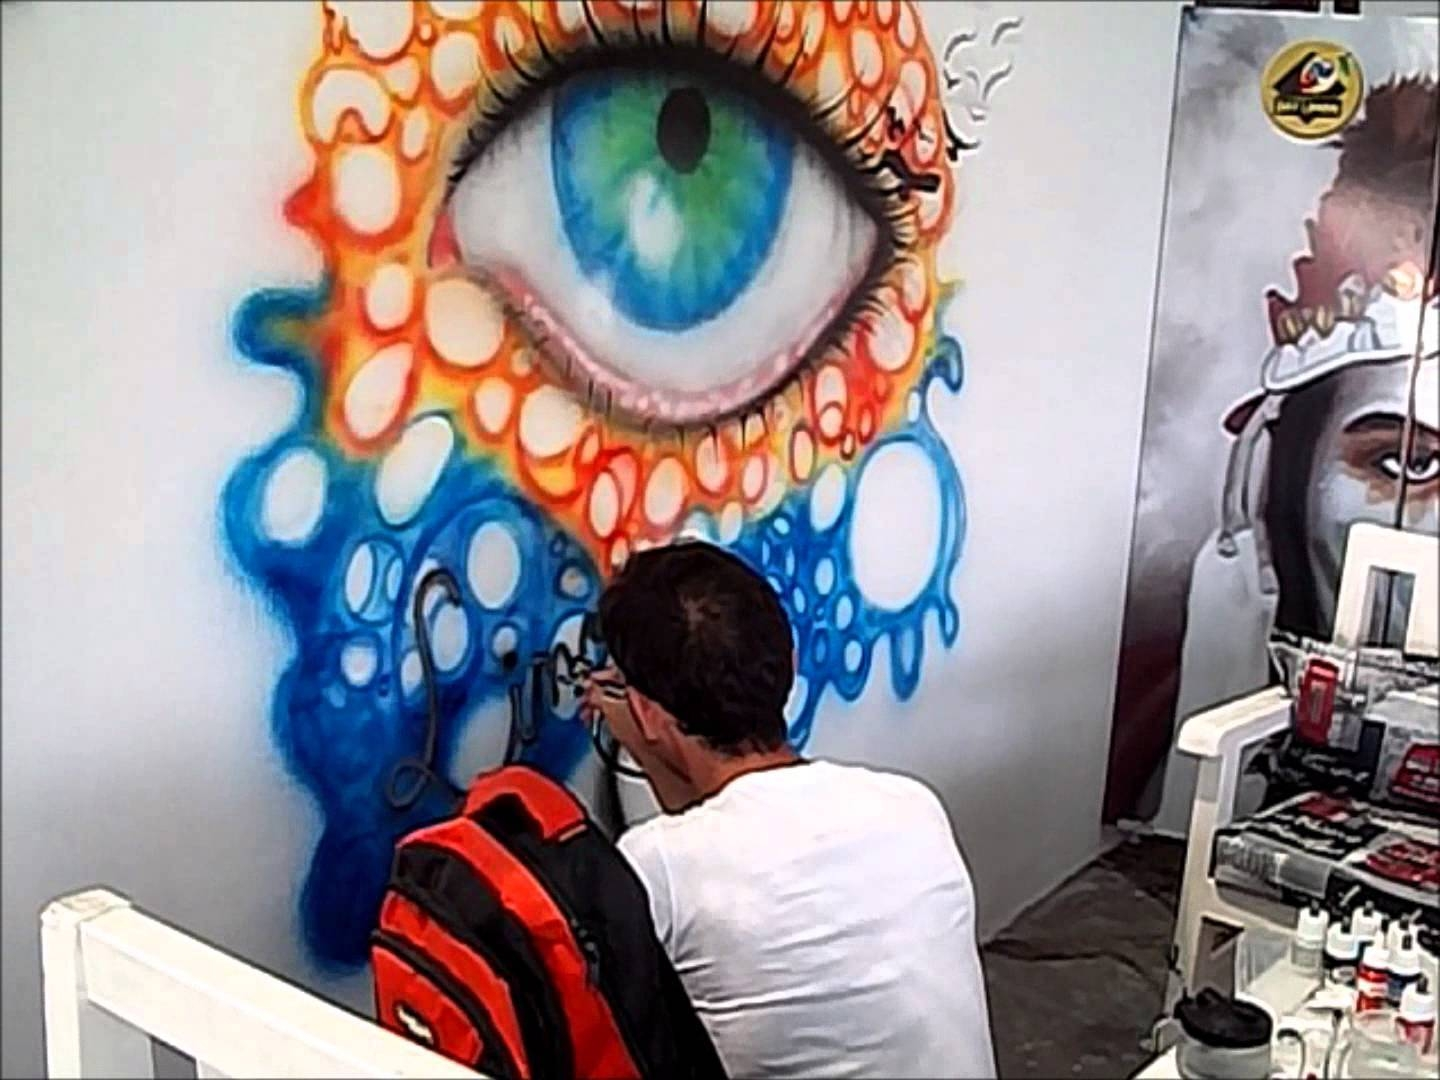 Gelibolu Do?an Dinç Airbrush Painting Eye Paint On Wall Mural Regarding Most Current Airbrush Wall Art (View 10 of 20)